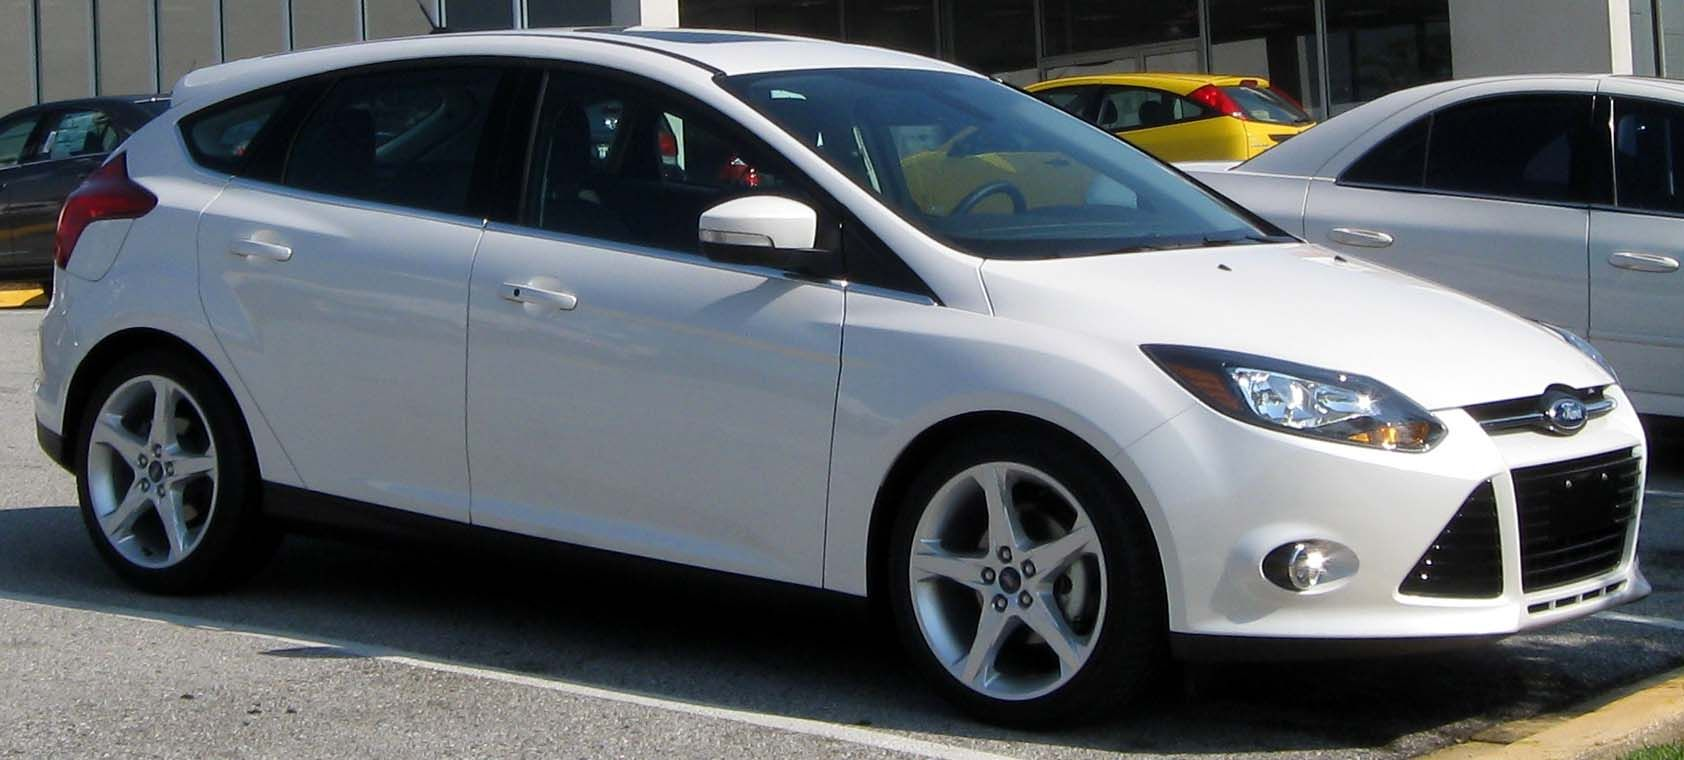 Ford focus iii hatchback tdci hp econetic start stop technical specifications fuel economy consumption